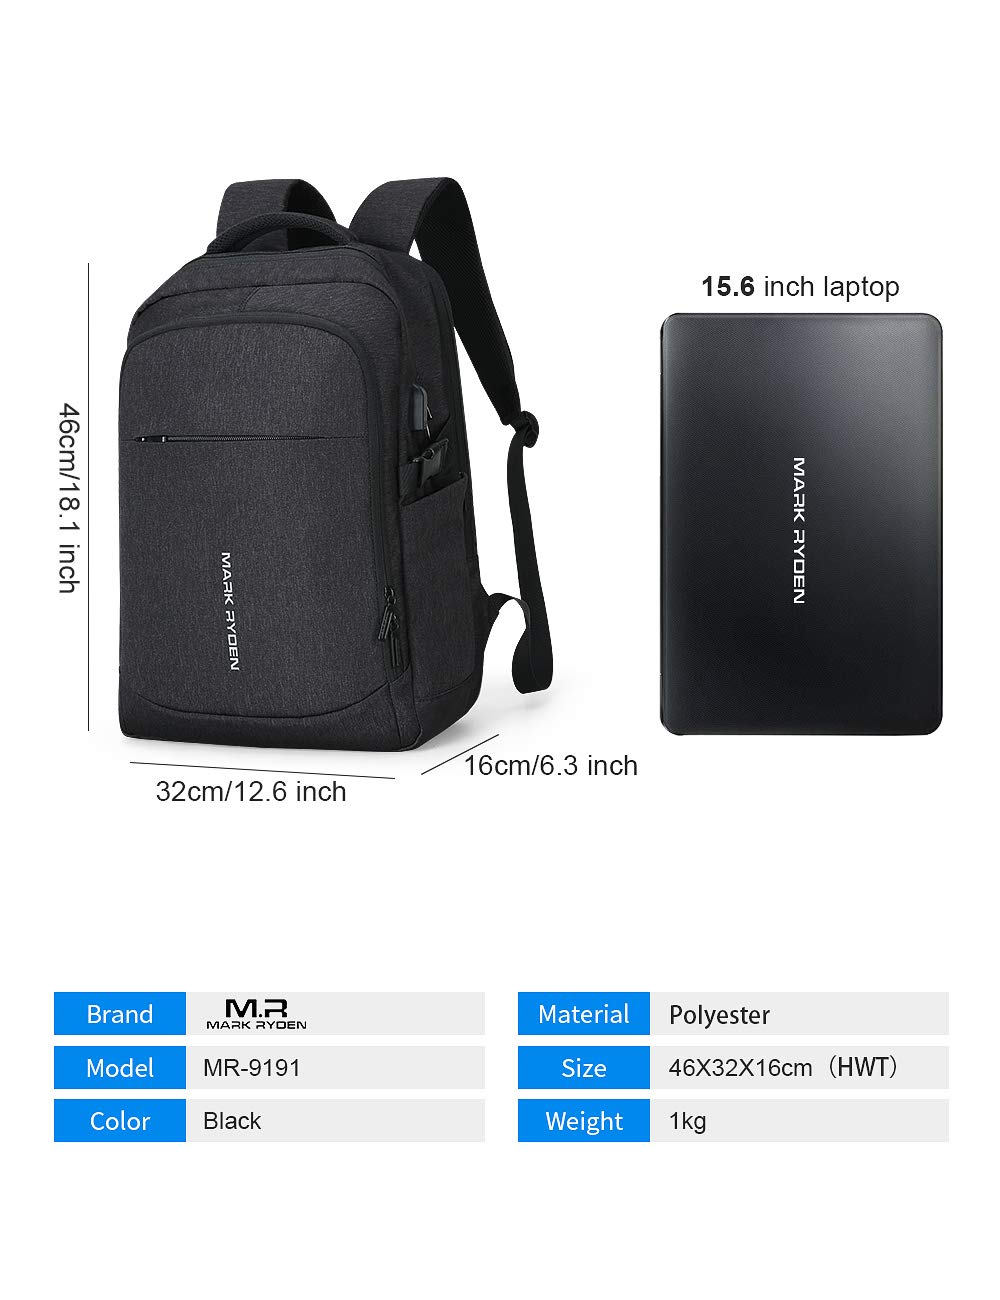 Markryden Laptop Backpack Business Bags with USB Charging Port Water-Proof School Travel Work Bag Fits 17.3 15.6 Inch Laptop